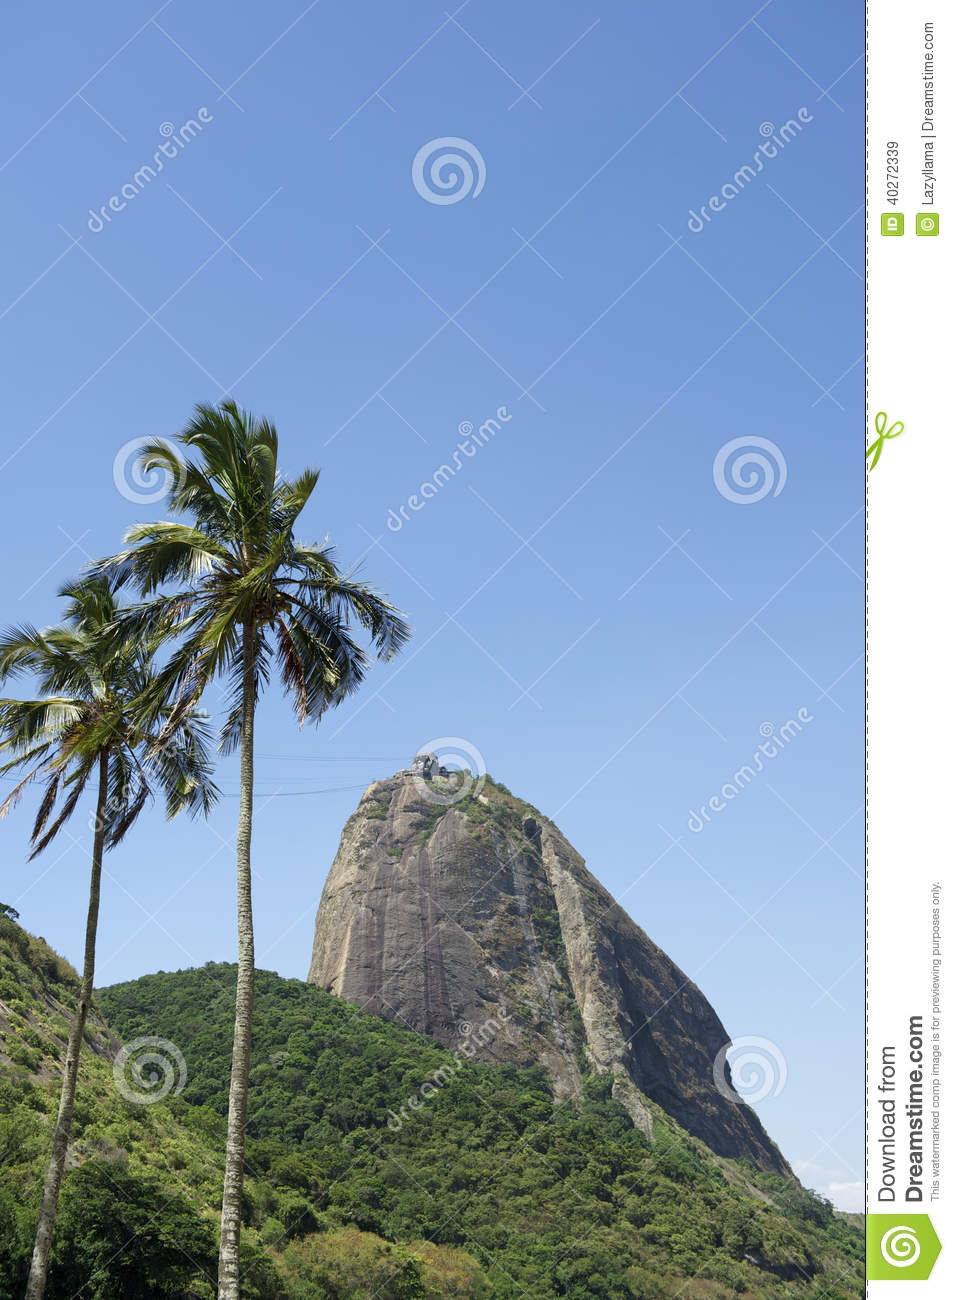 Sugarloaf Mountain Rio Brazil Palm Trees